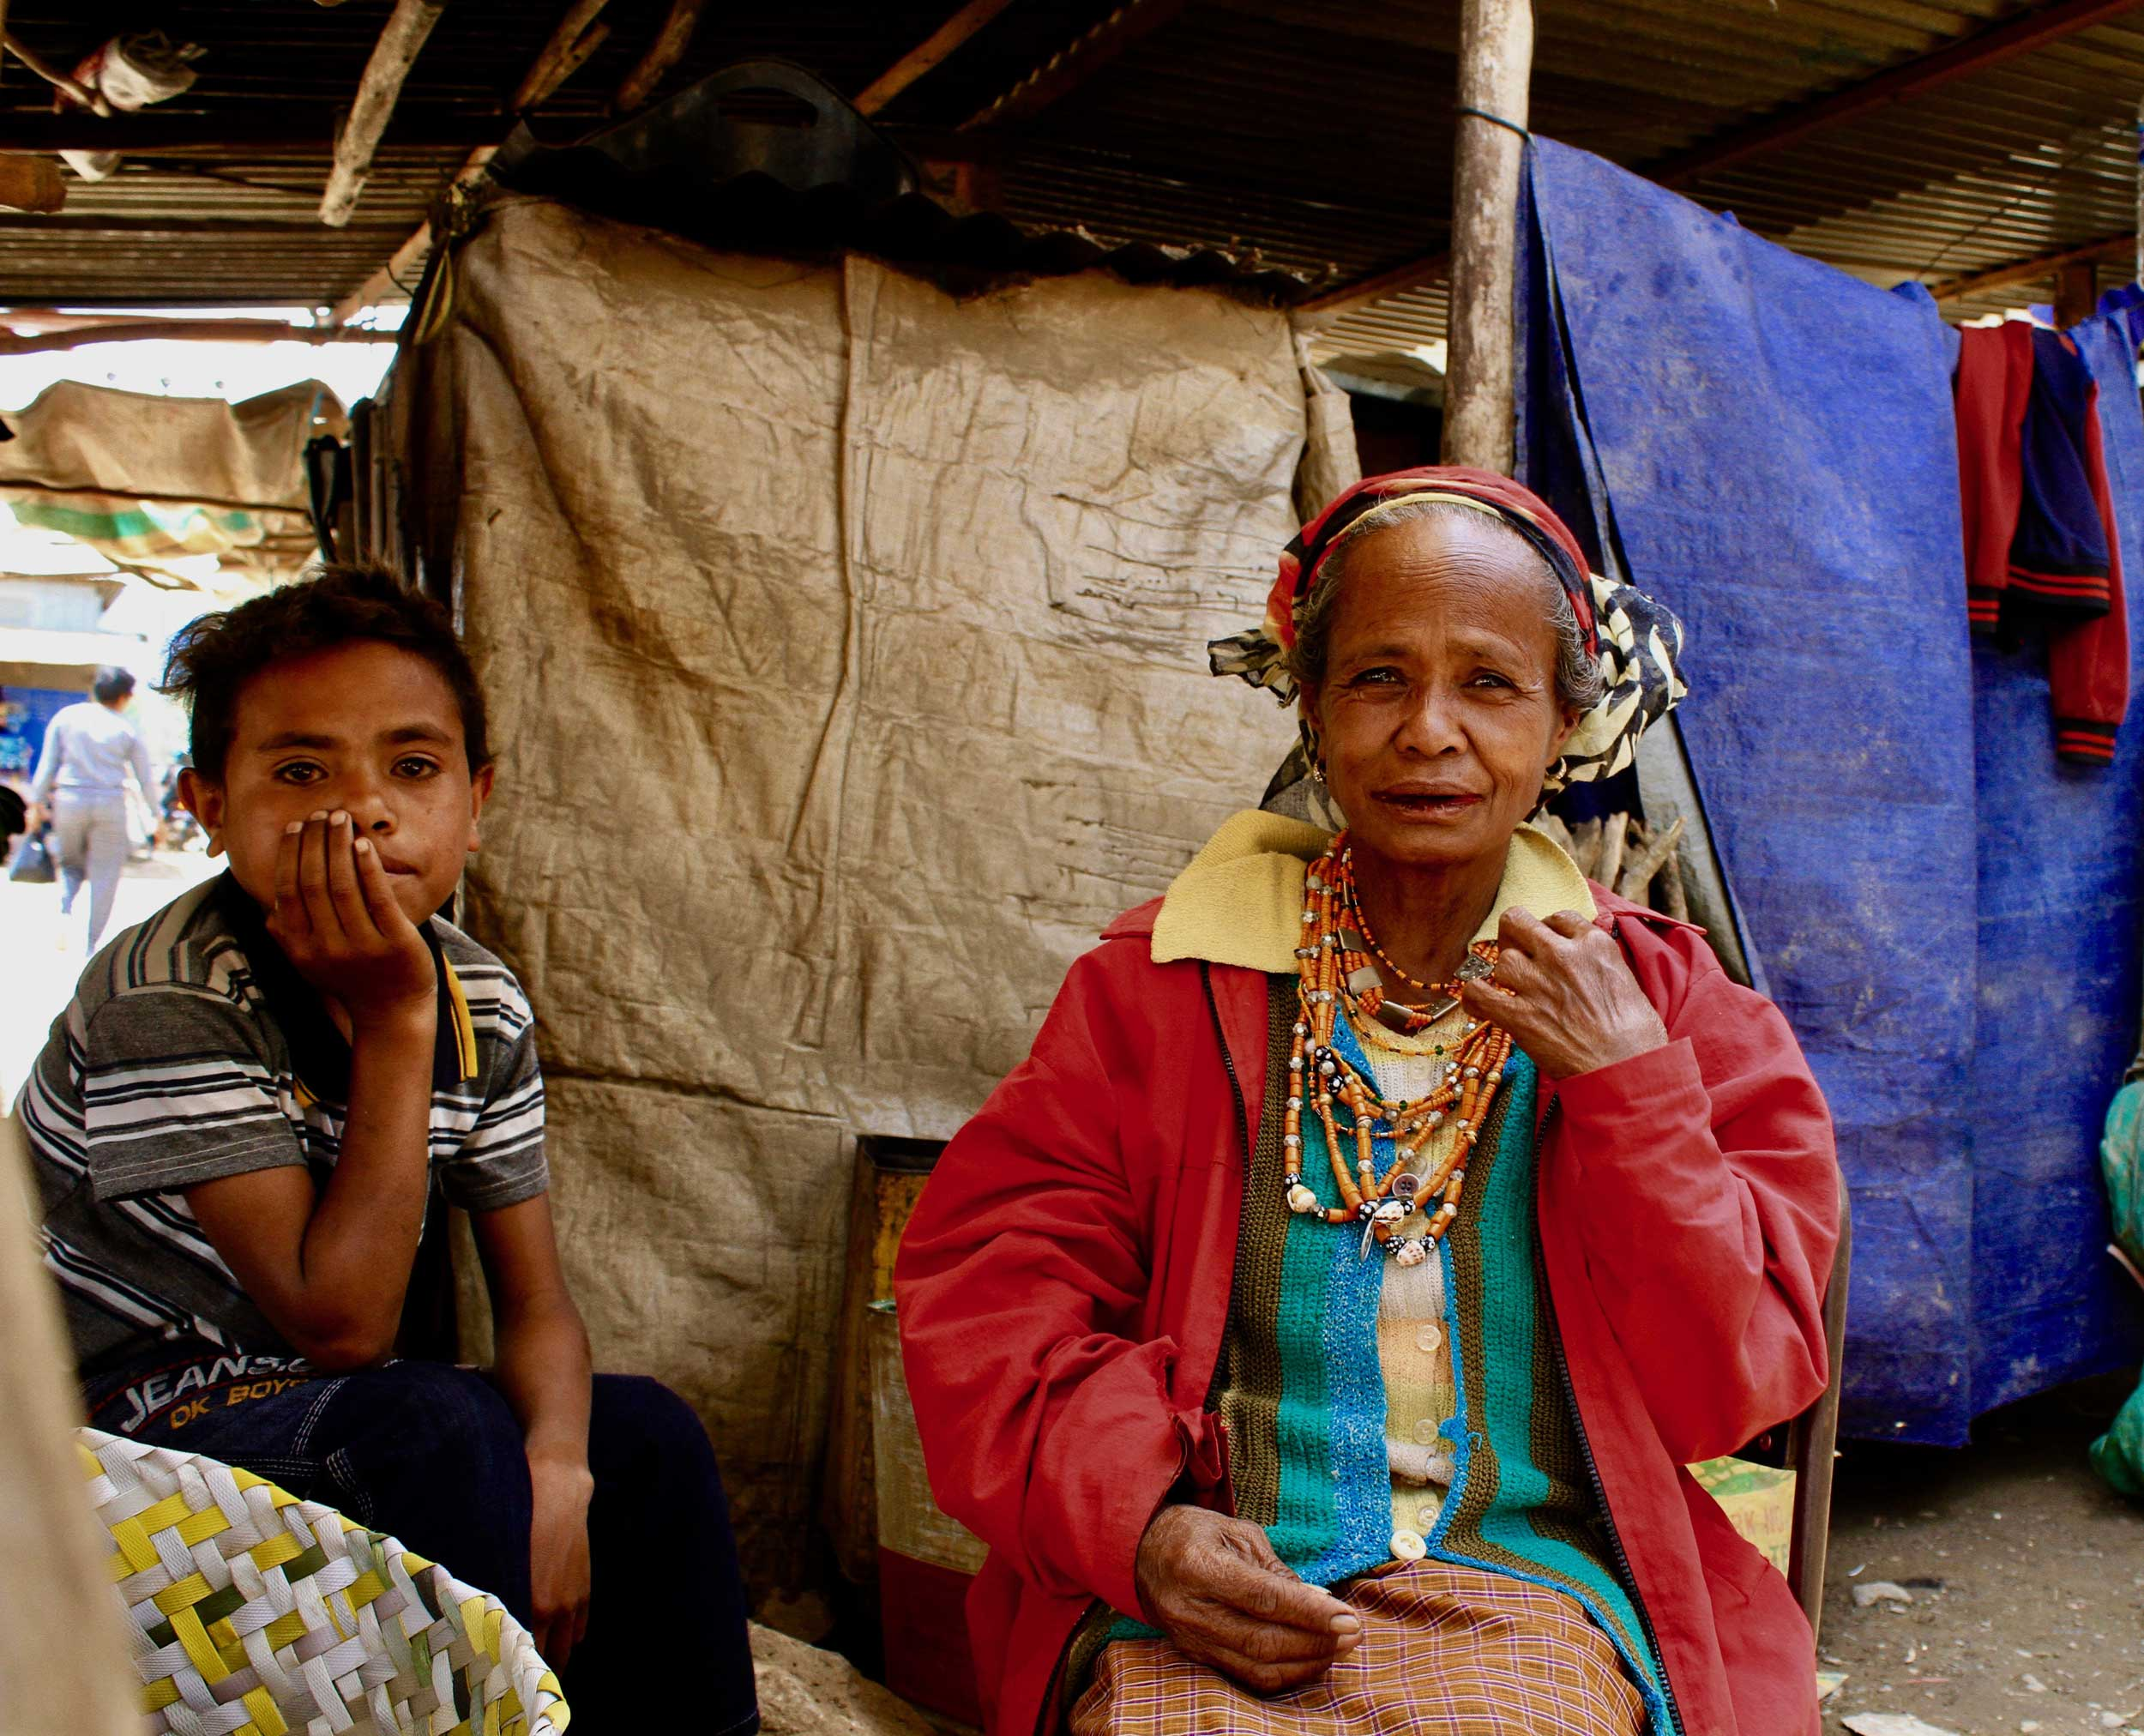 An elderly lady and a young boy at a market in Timor-Leste